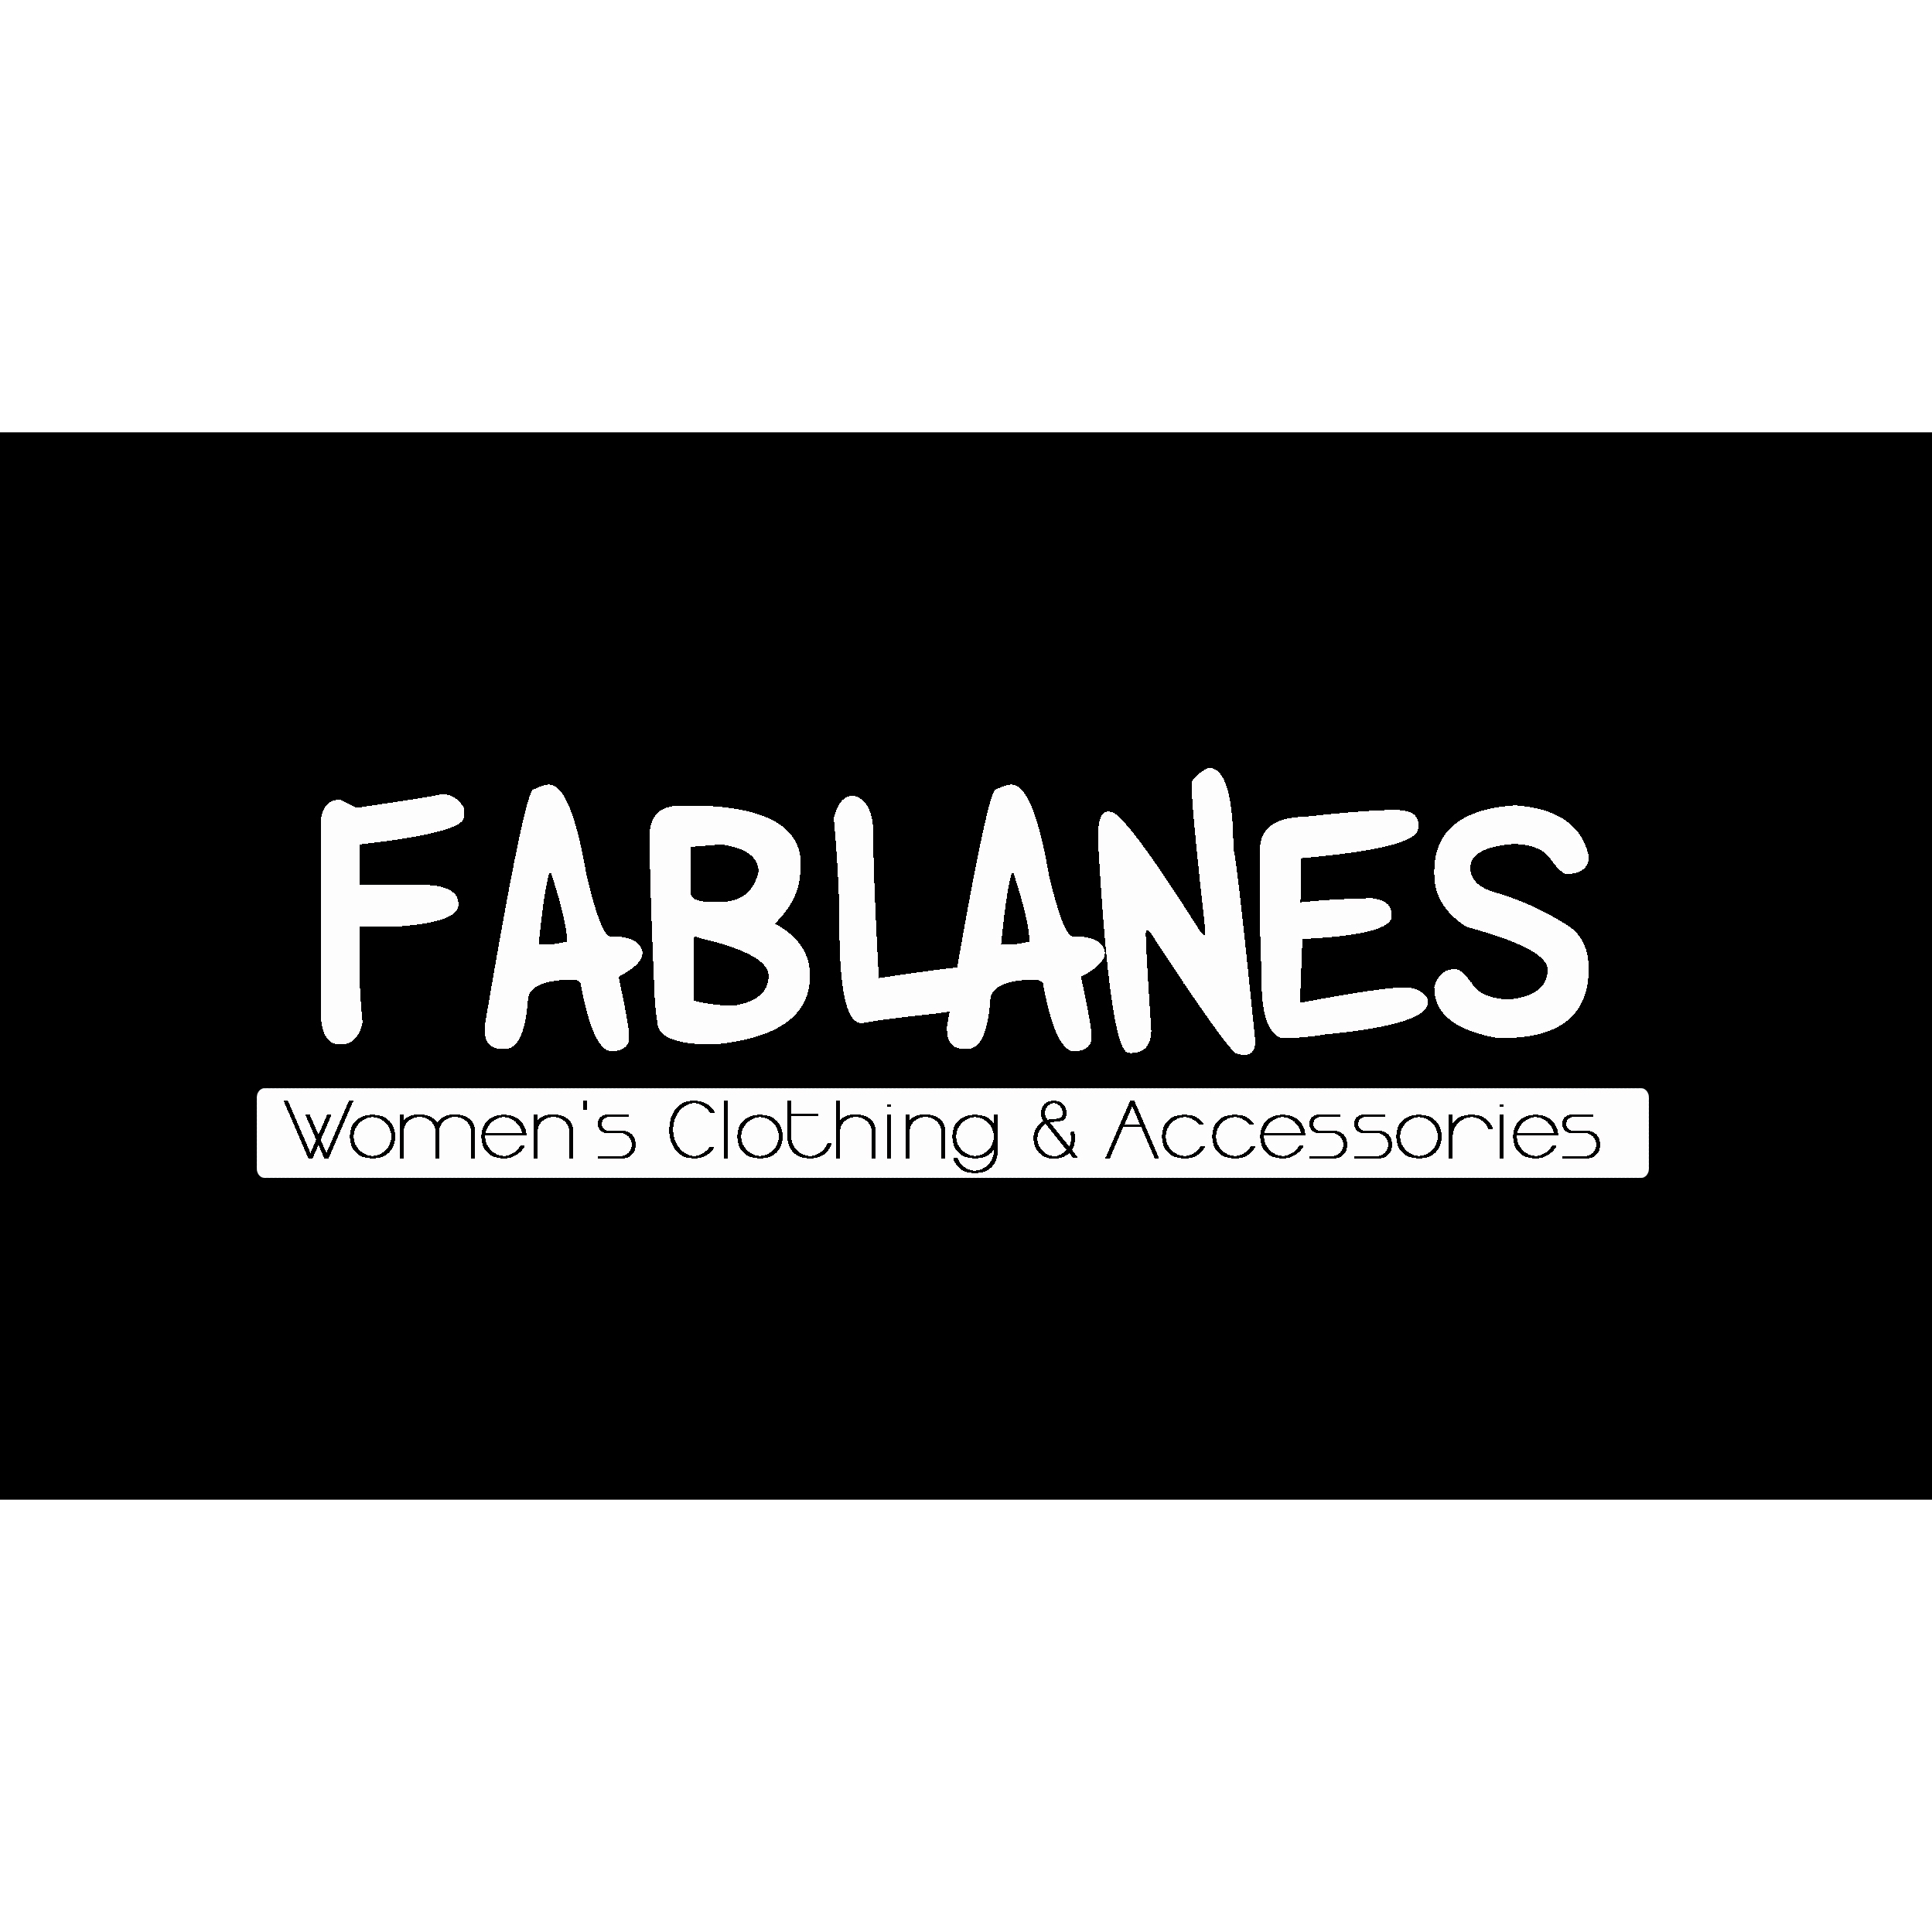 FabLanes